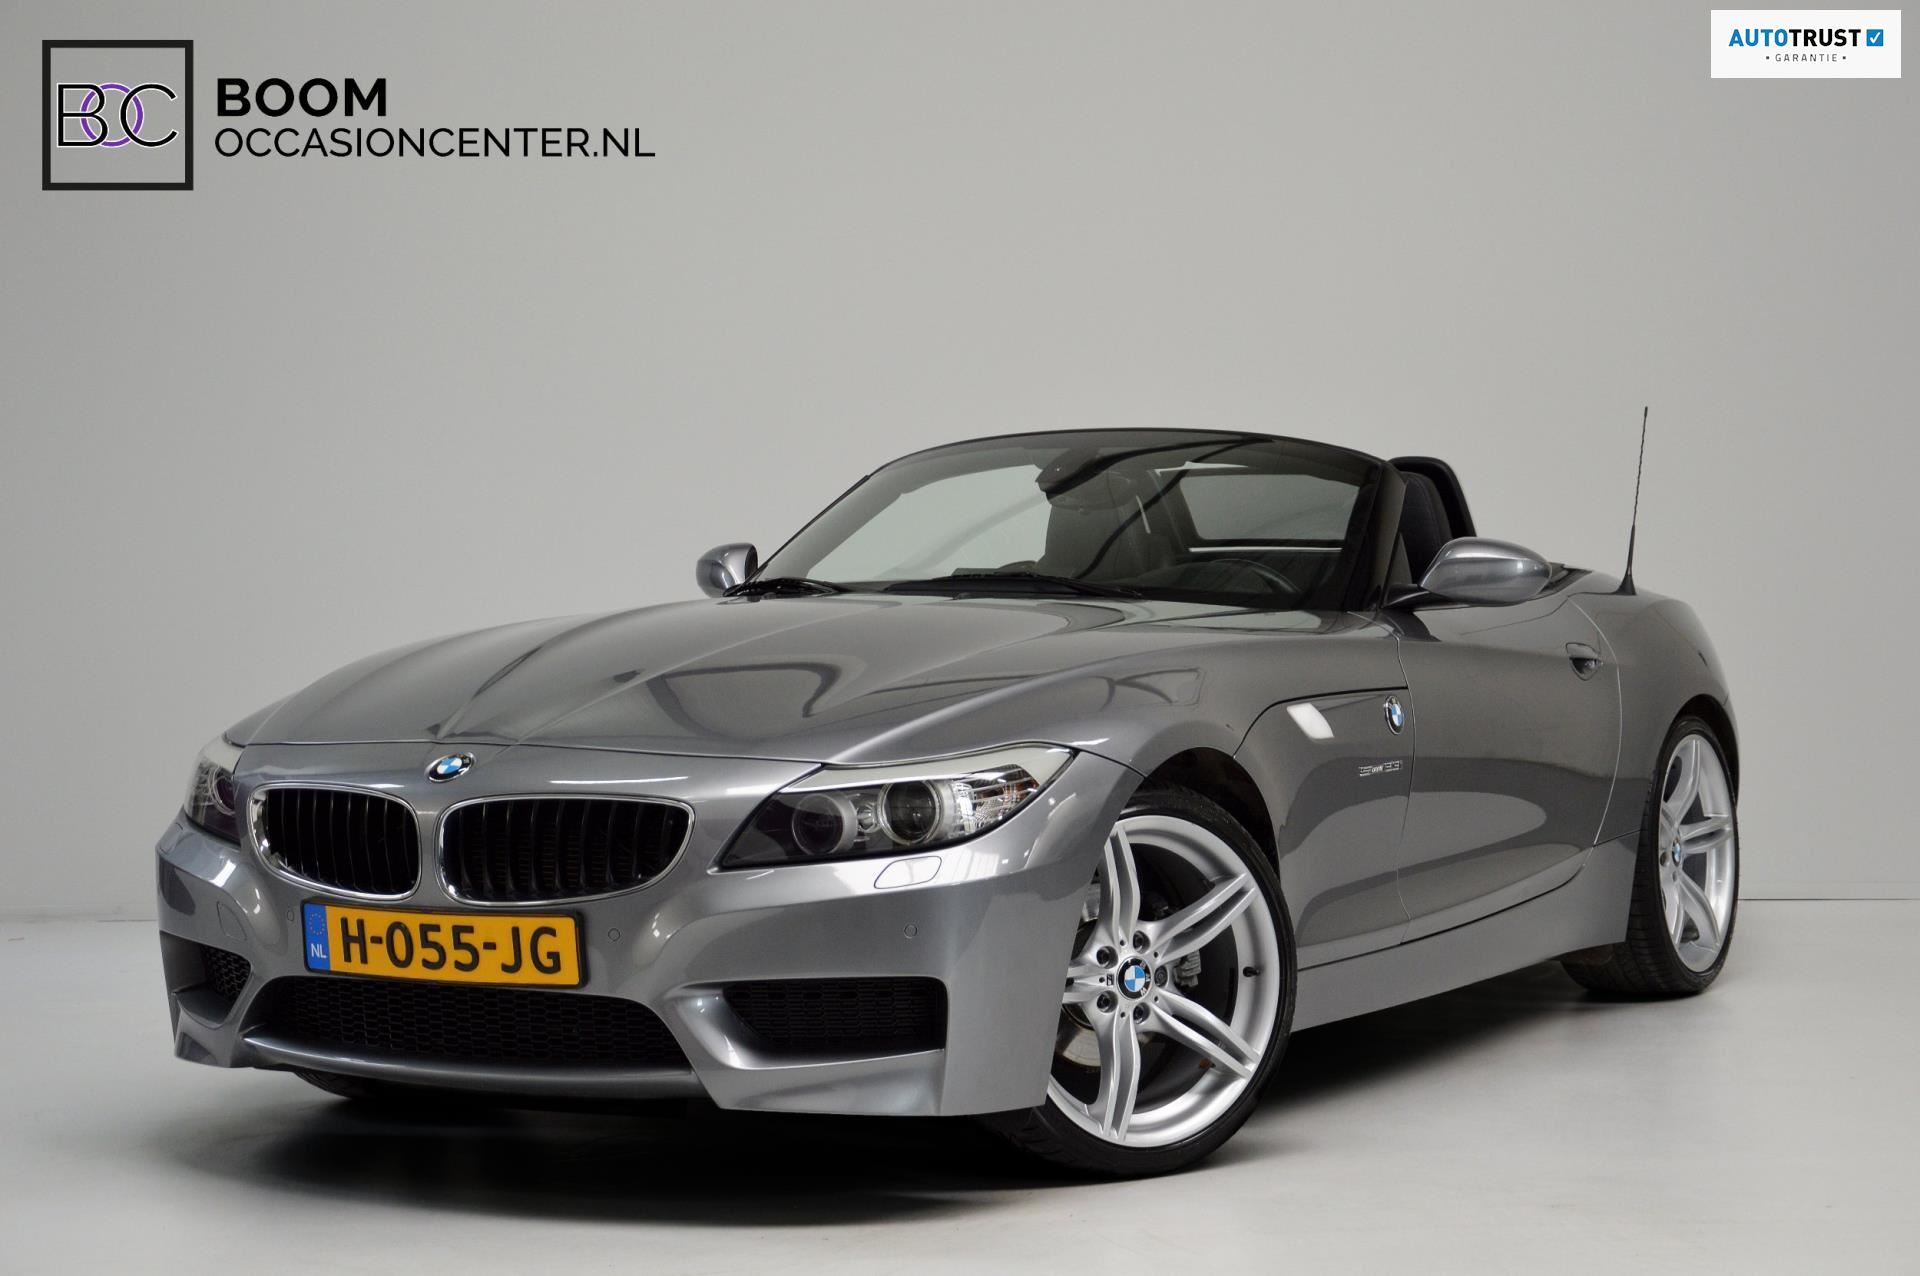 BMW Z4 Roadster occasion - BoomOccasionCenter.nl